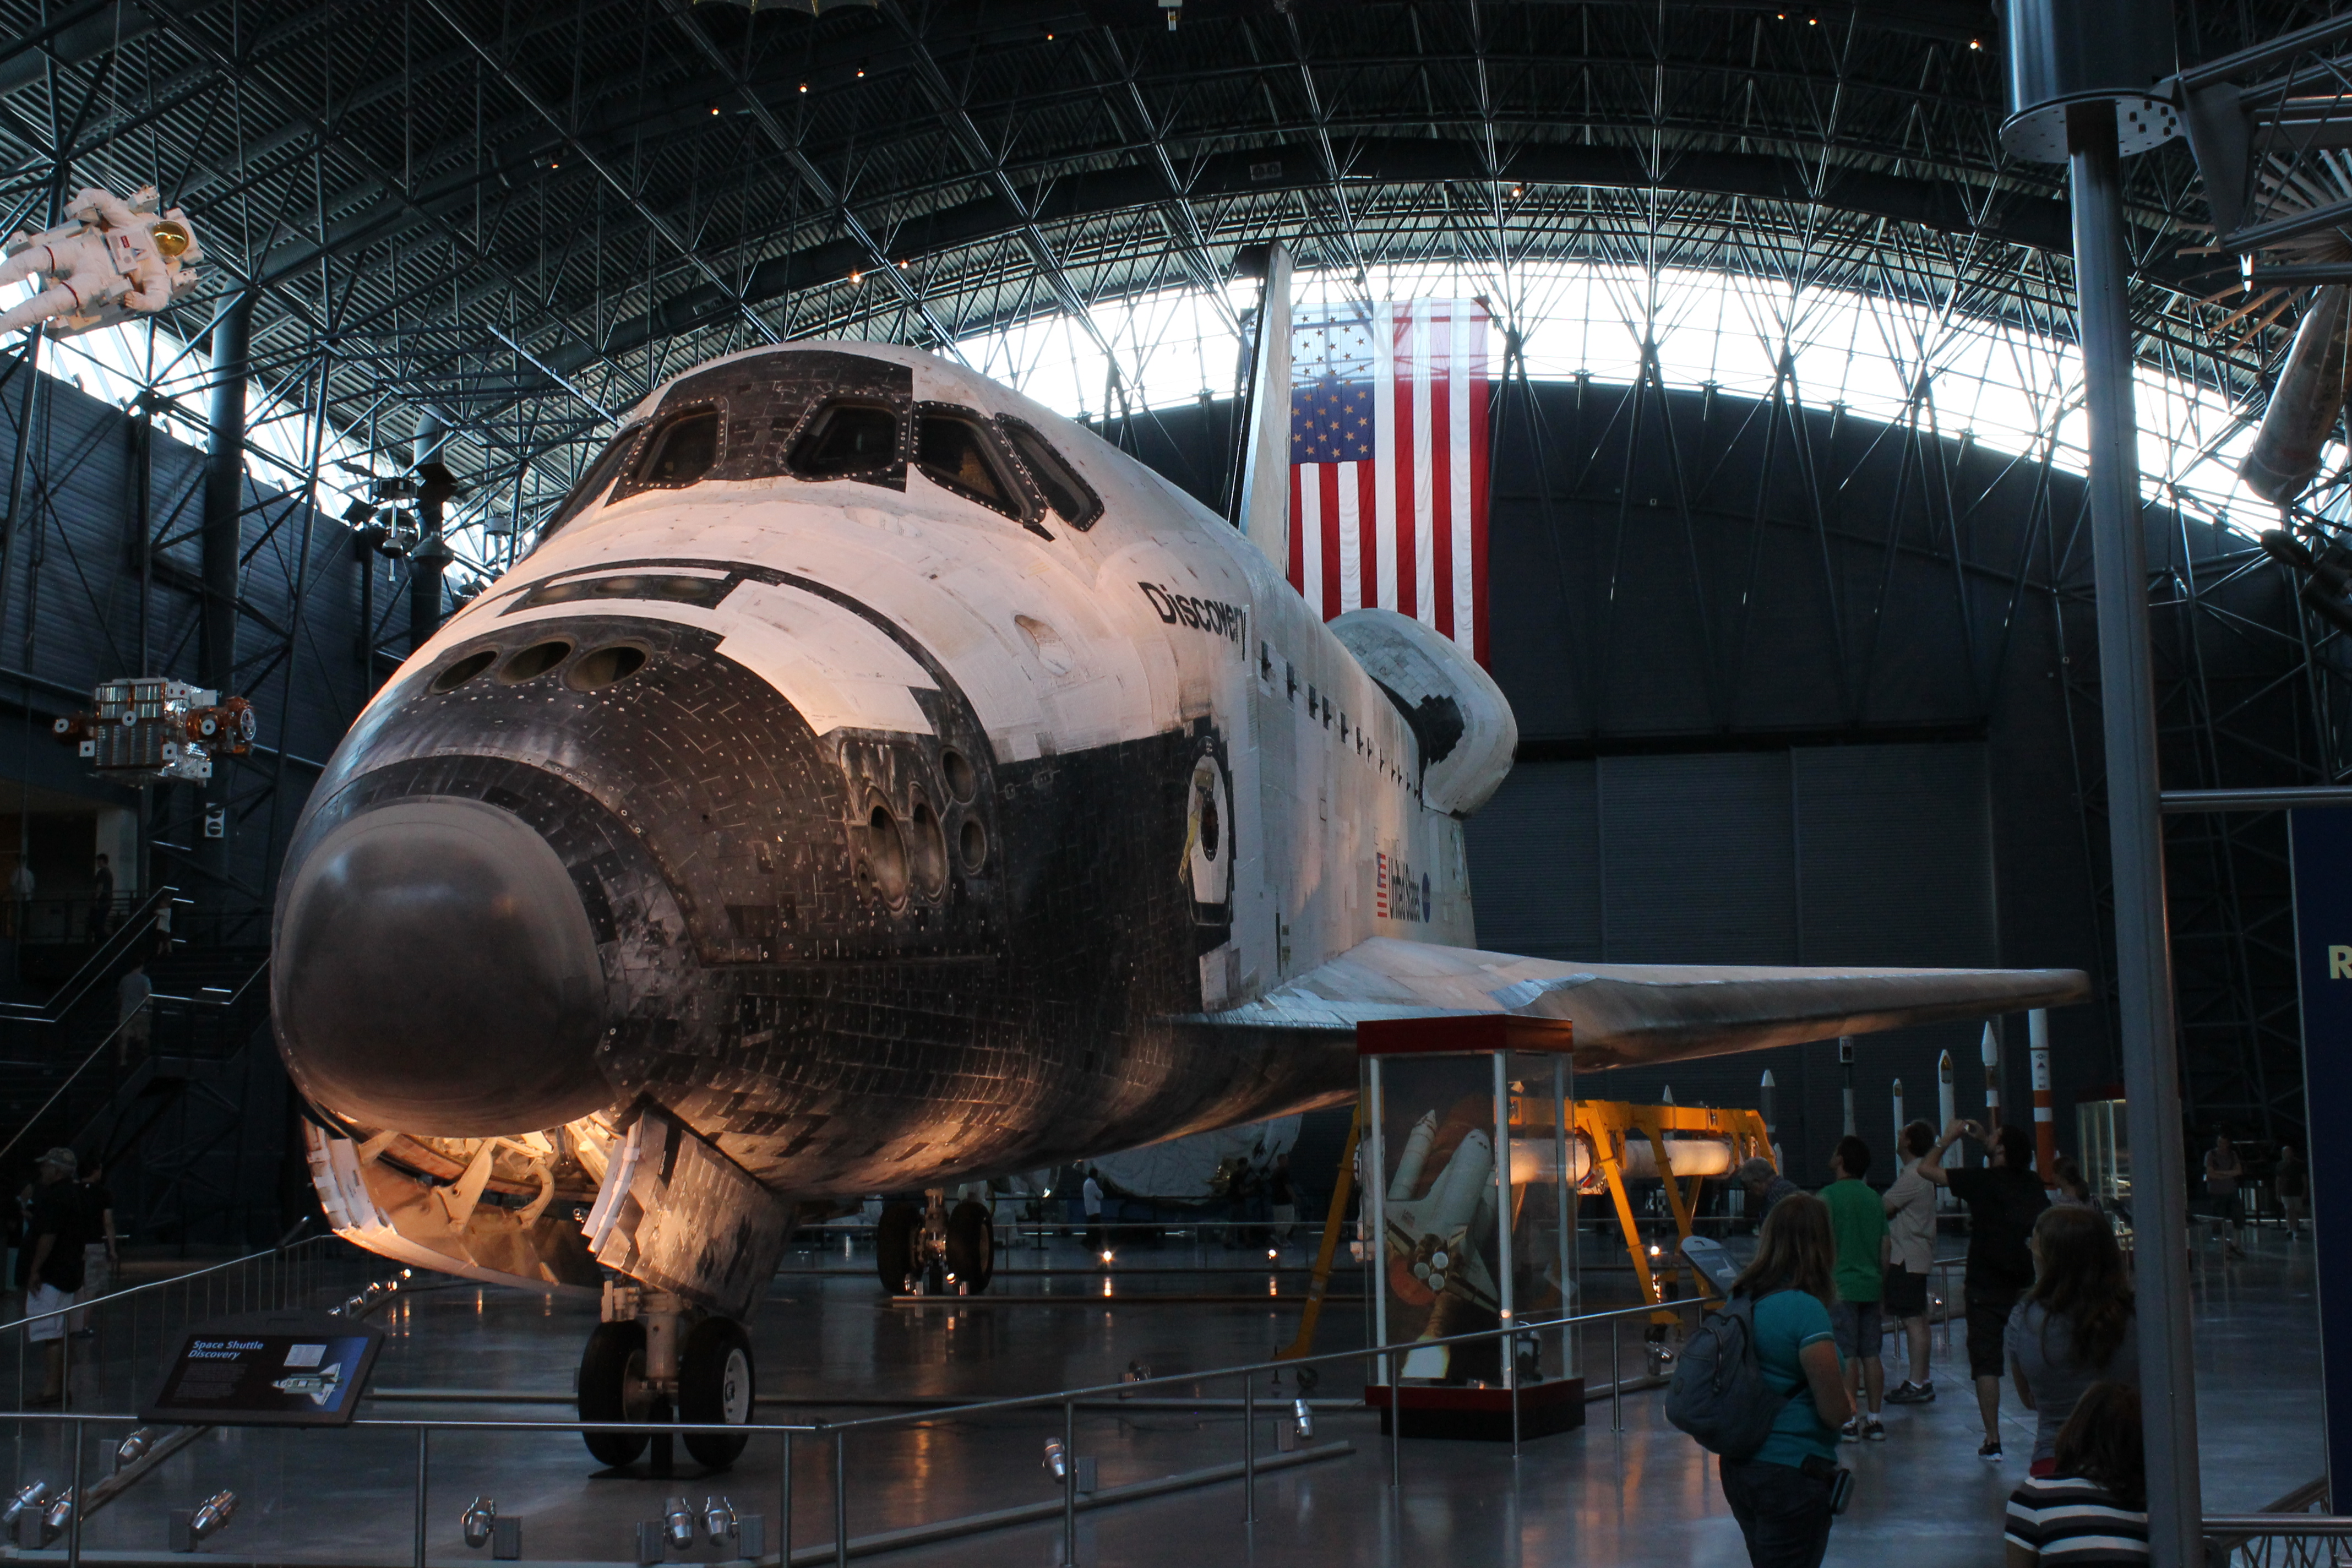 File:Discovery on display at Udvar-Hazy.JPG - Wikipedia